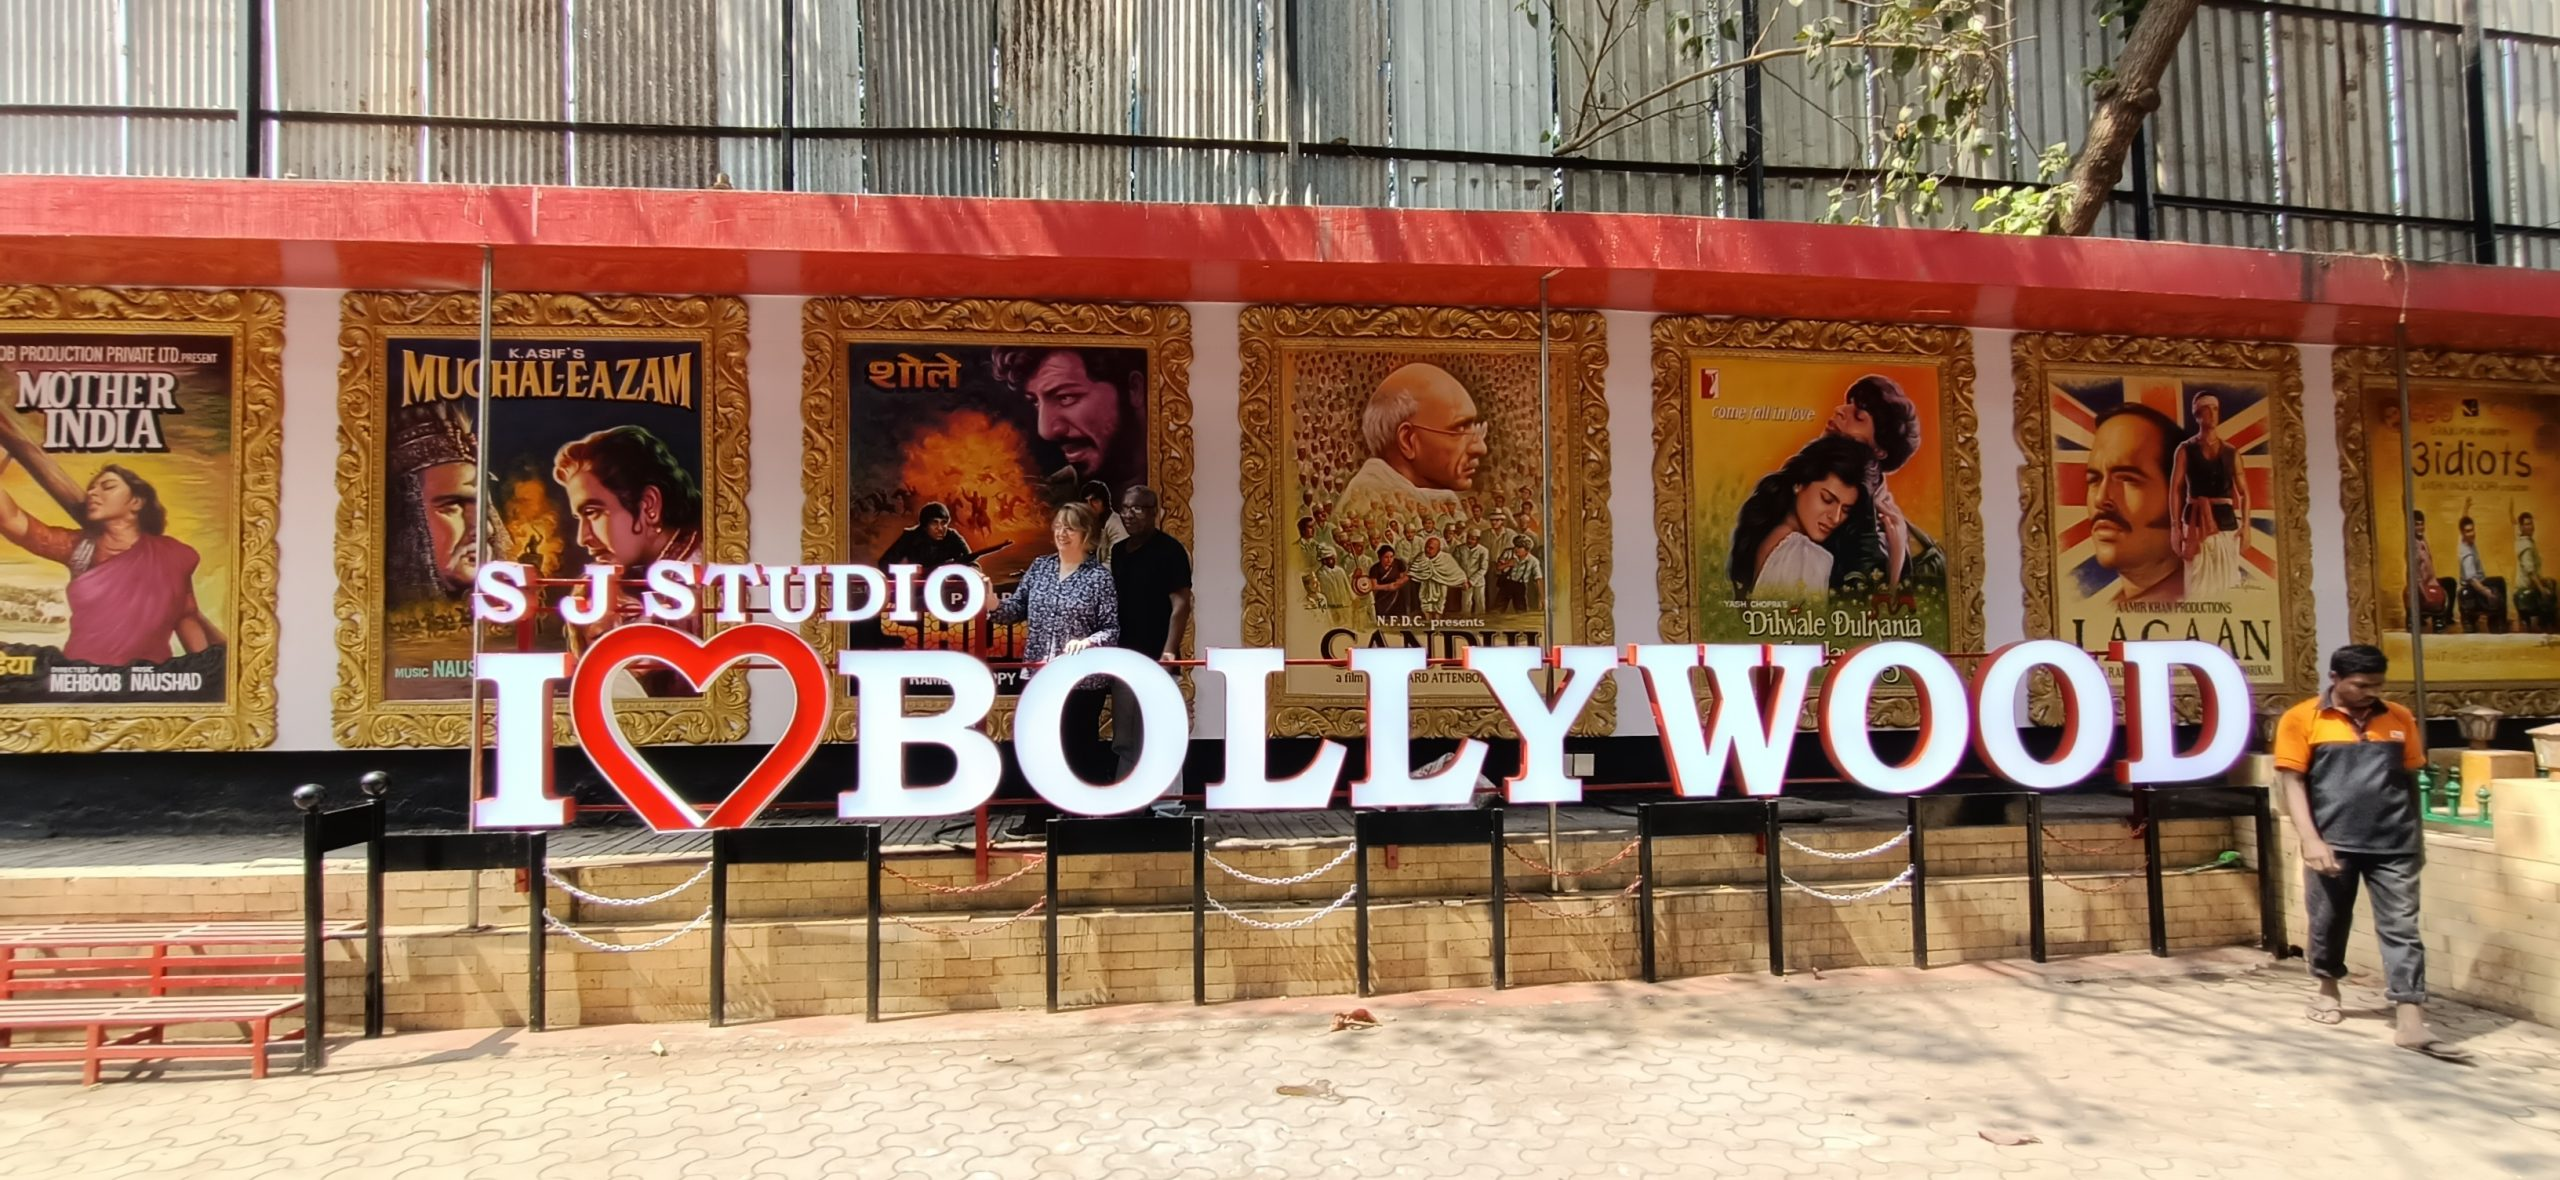 A signage of Bollywood